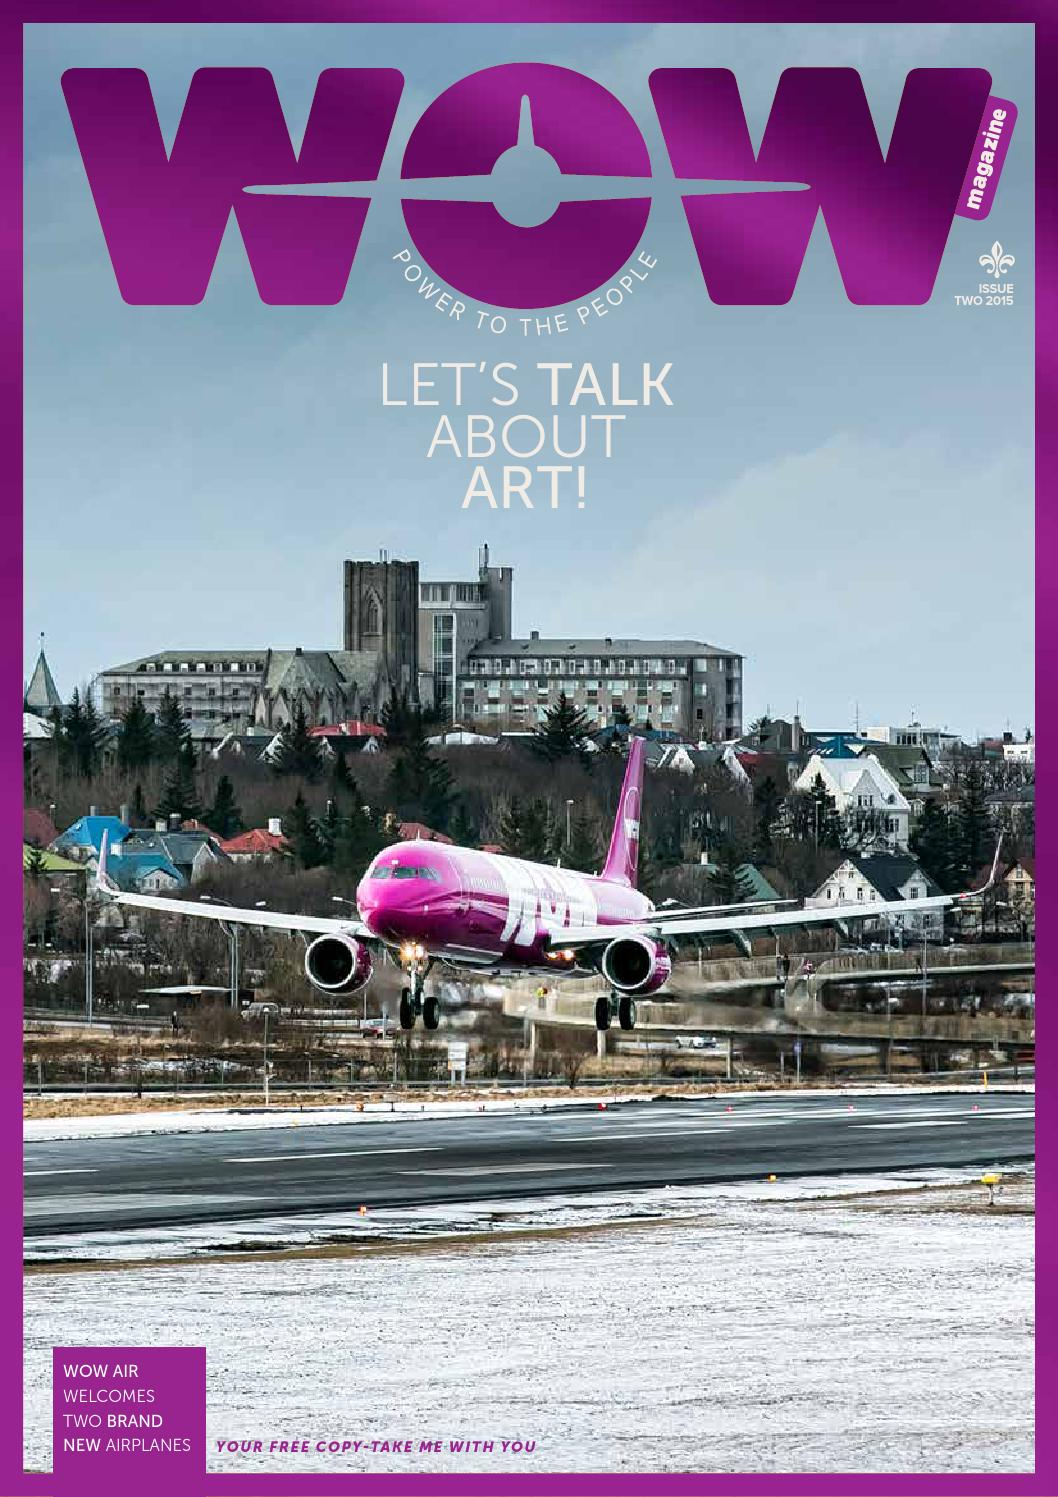 Wow Magazine Issue Two 2015 By Air Issuu Buy 1 Get Free Monopoly Cosmetic Organizer Tas Treveler